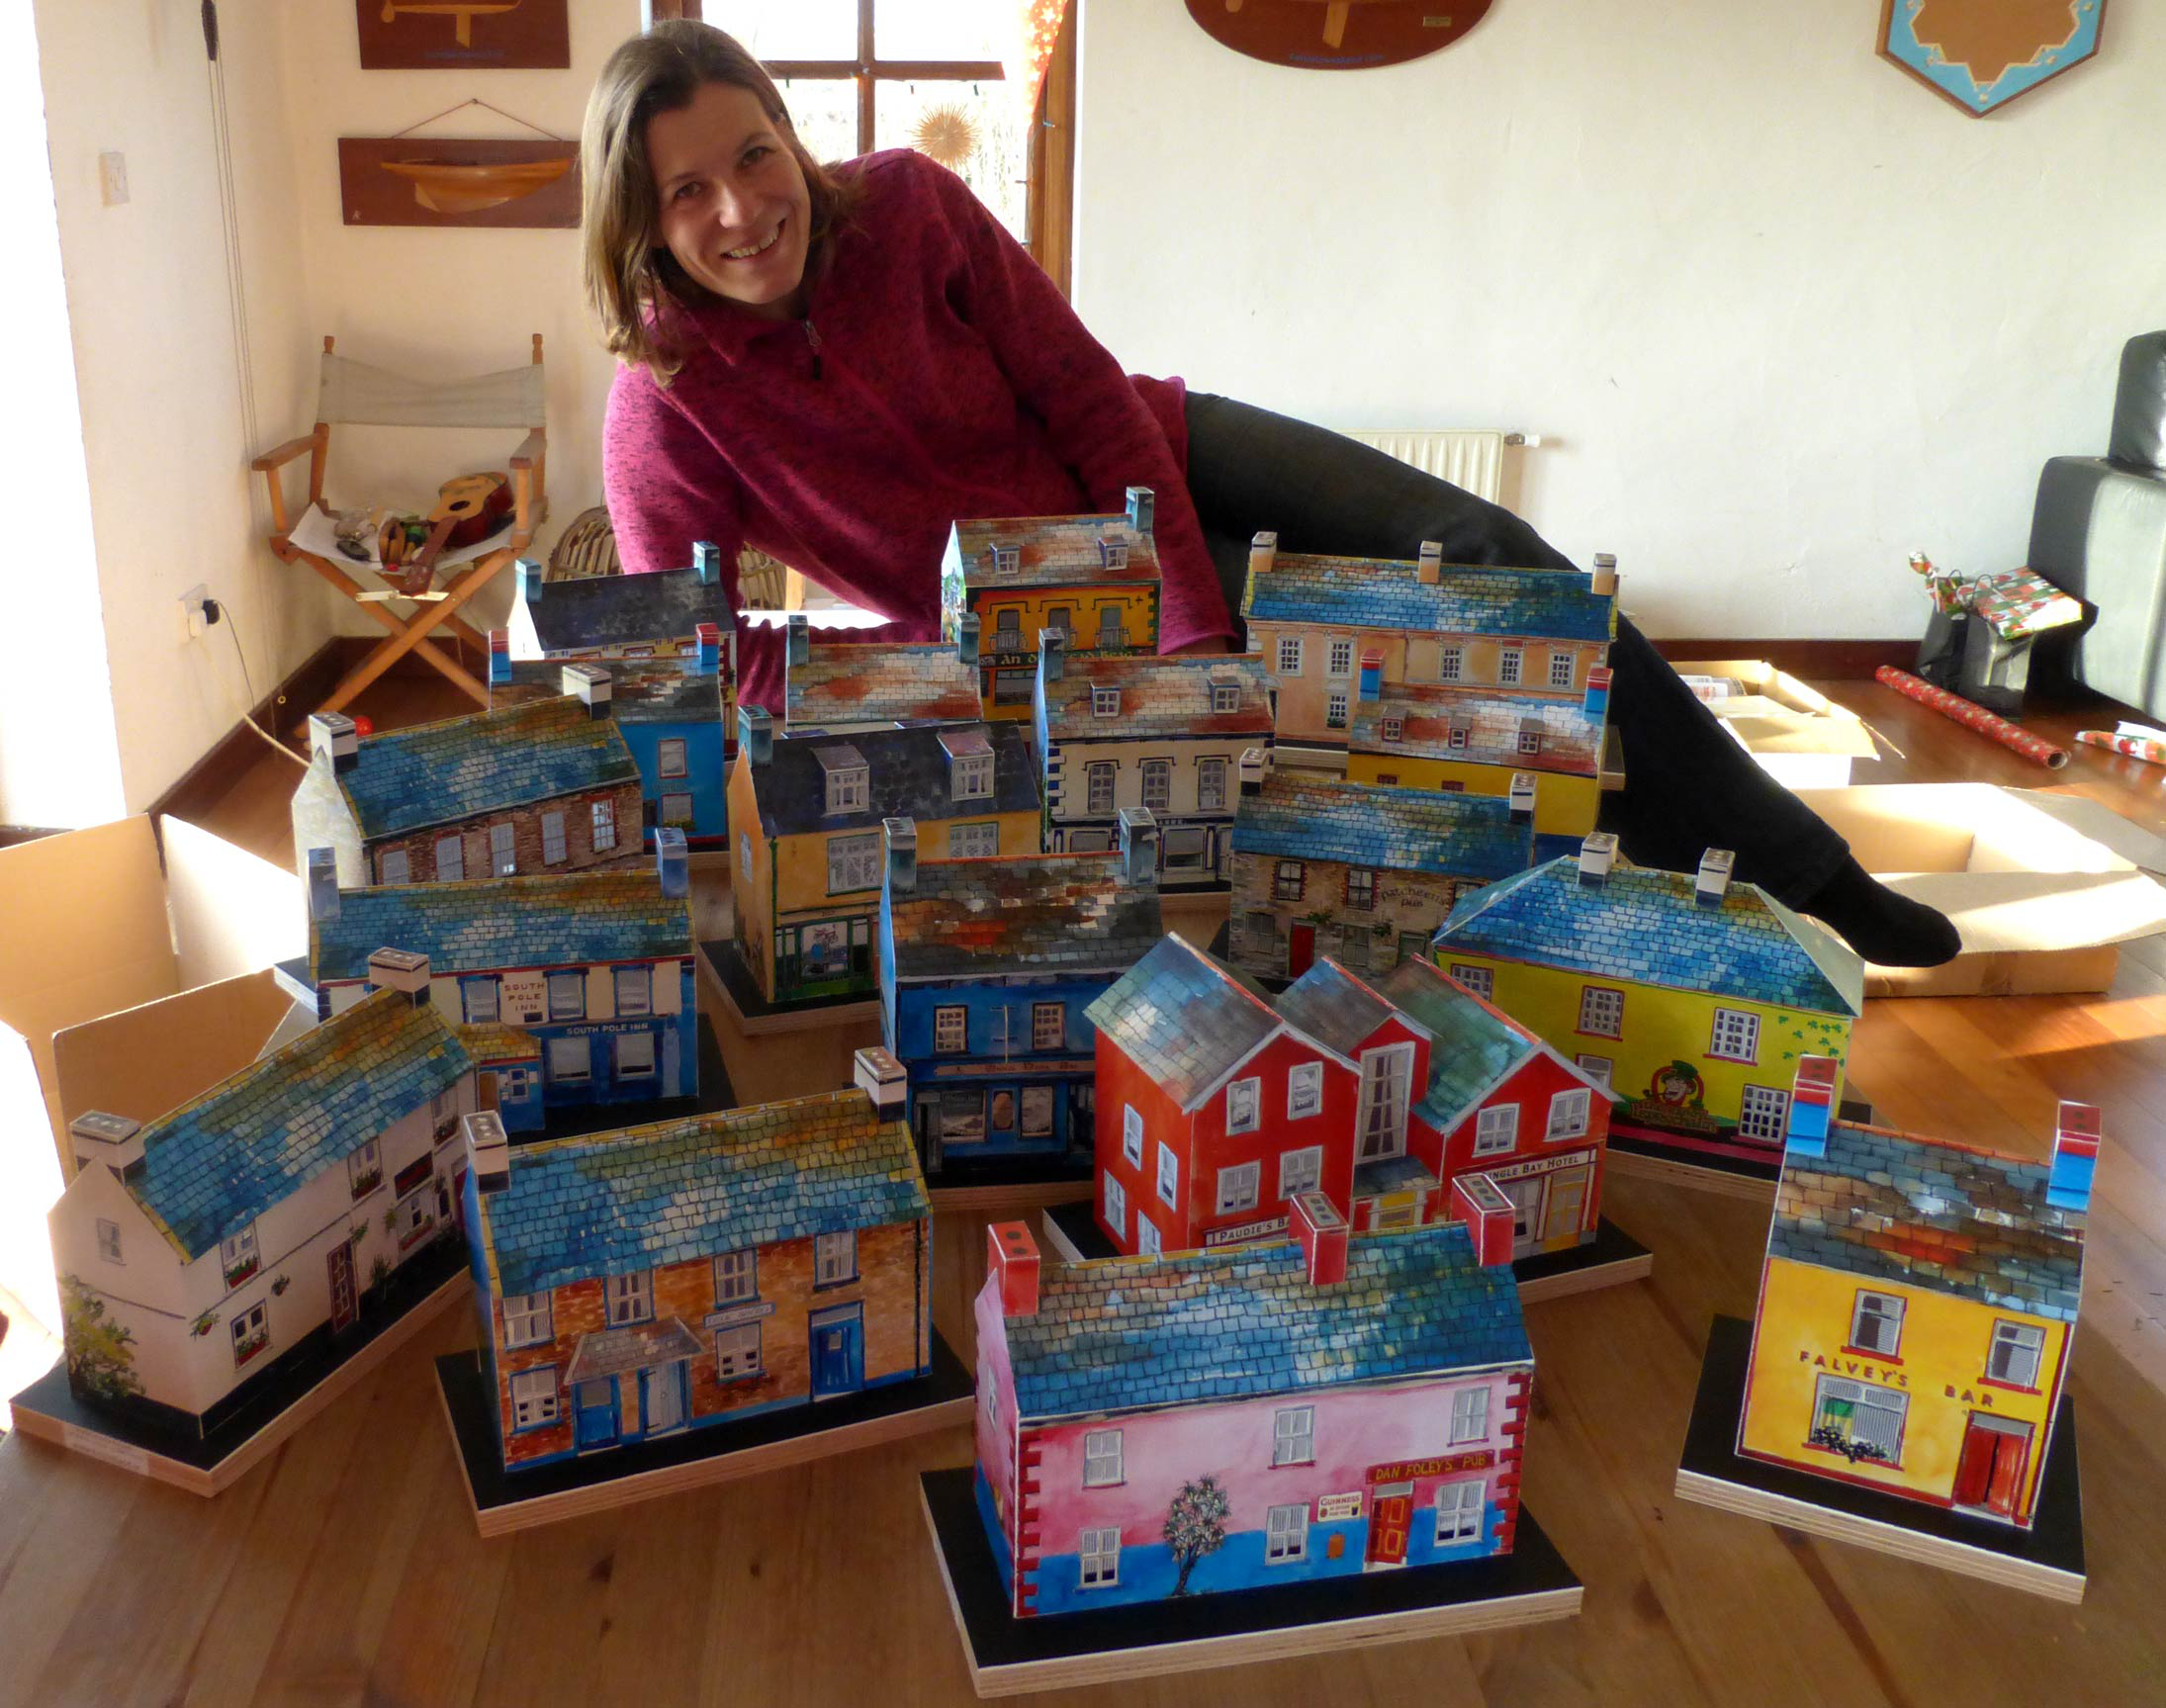 Anke came up with the idea in 2005 when her son was building a model railway set.